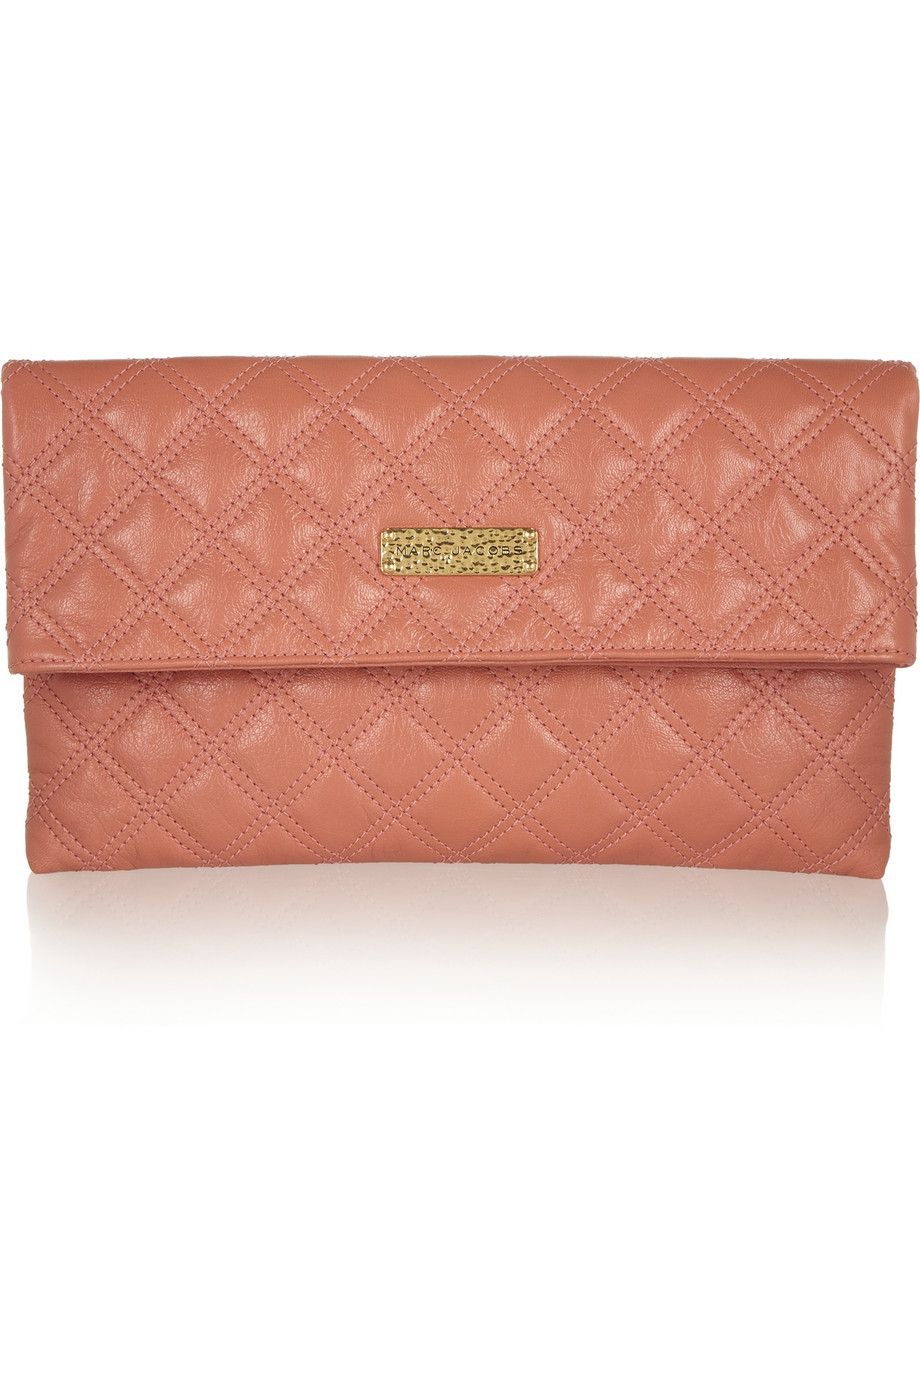 Eugenie large quilted leather clutch | Marc Jacobs | THE OUTNET